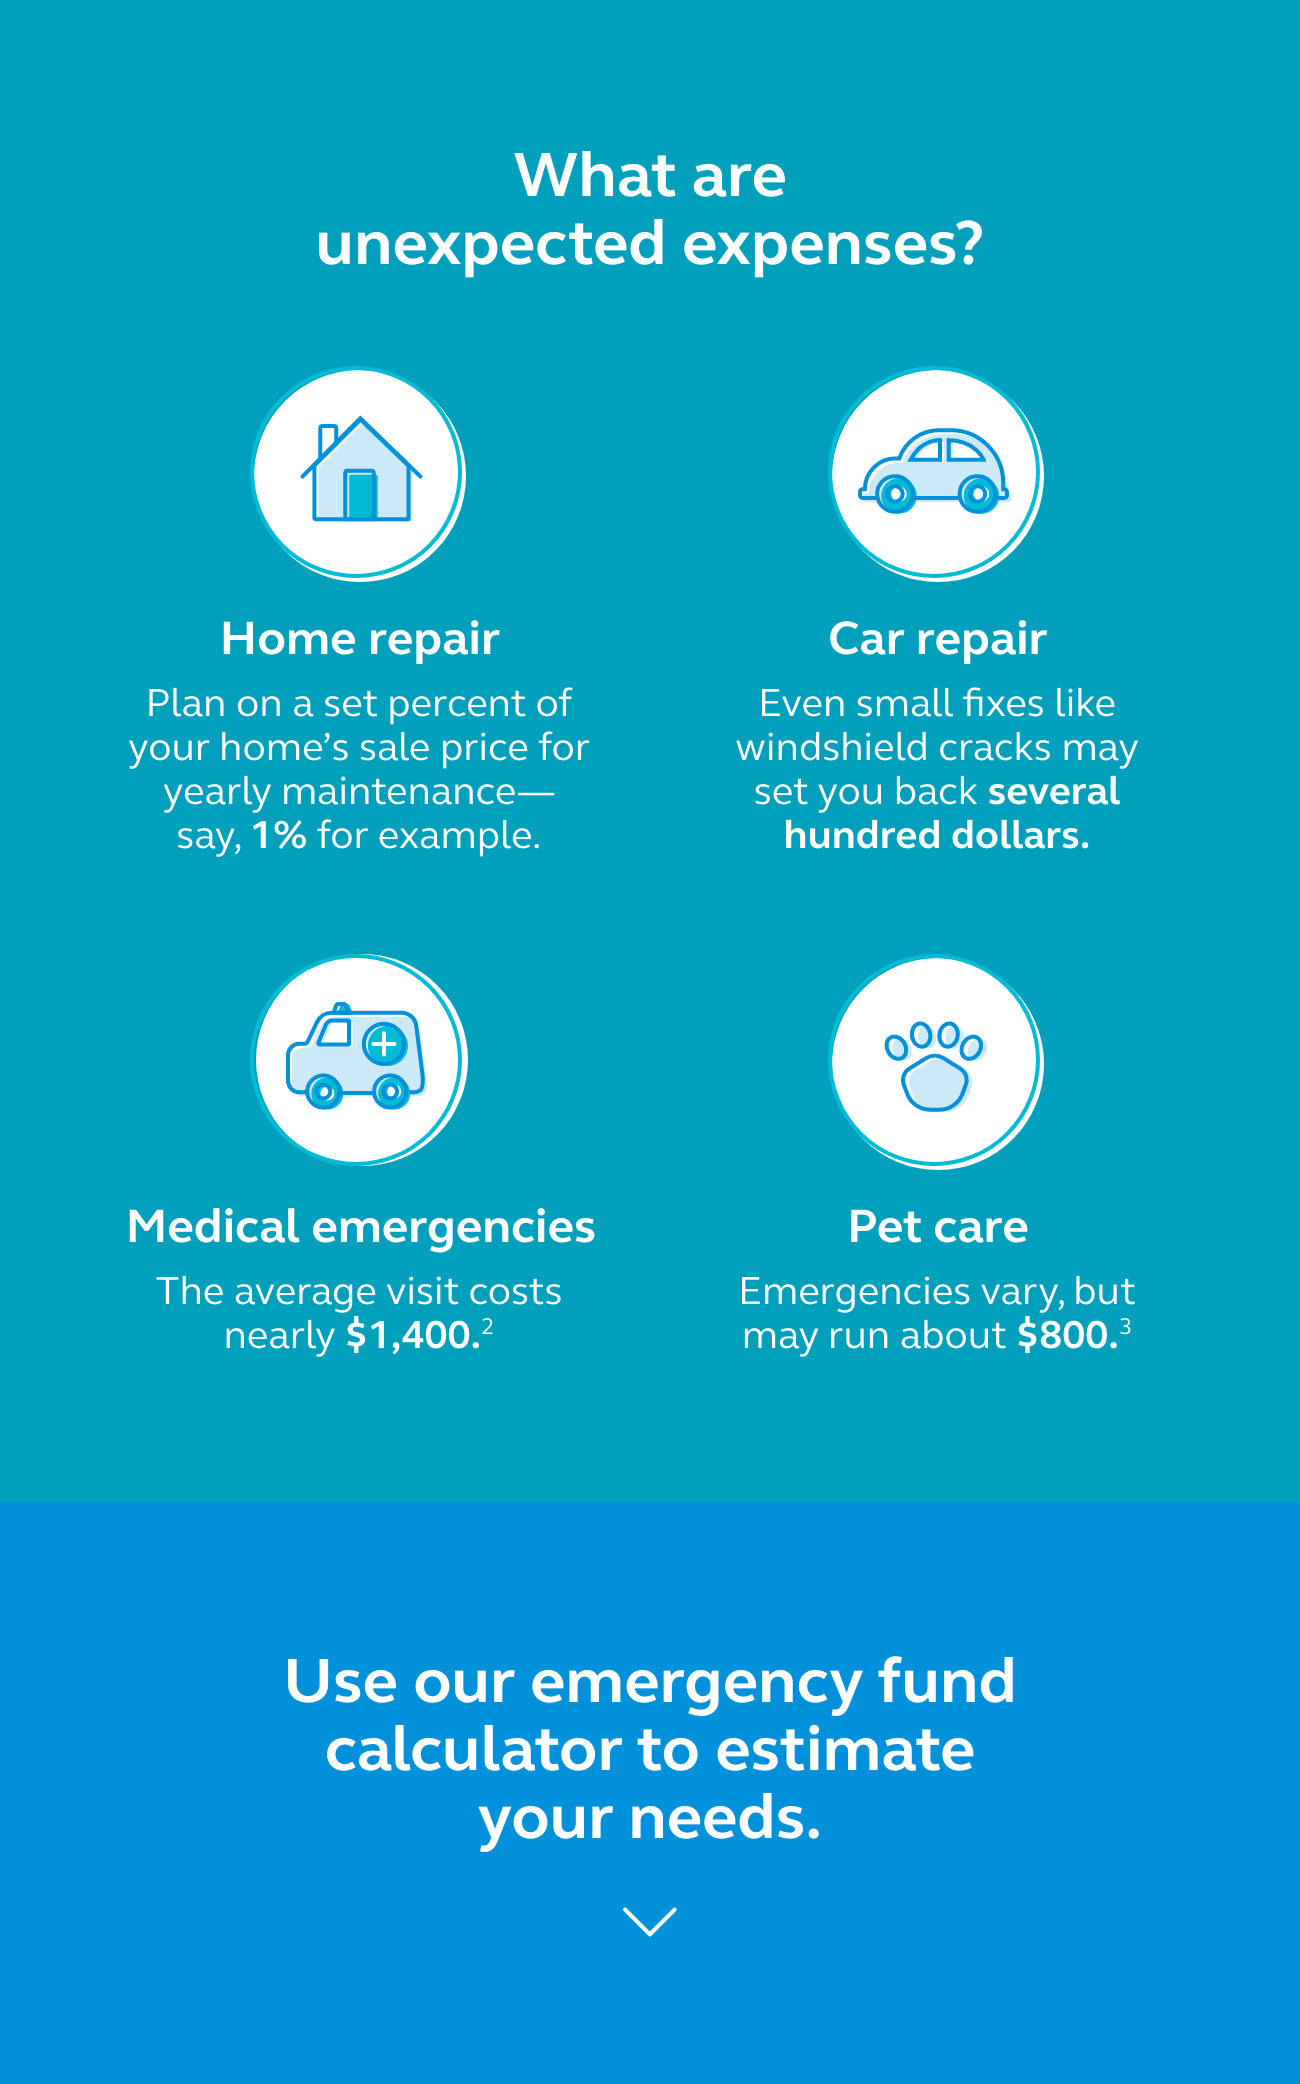 Graphic showing that unexpected expenses could be a home repair, a car repair, medical emergencies, or pet care.